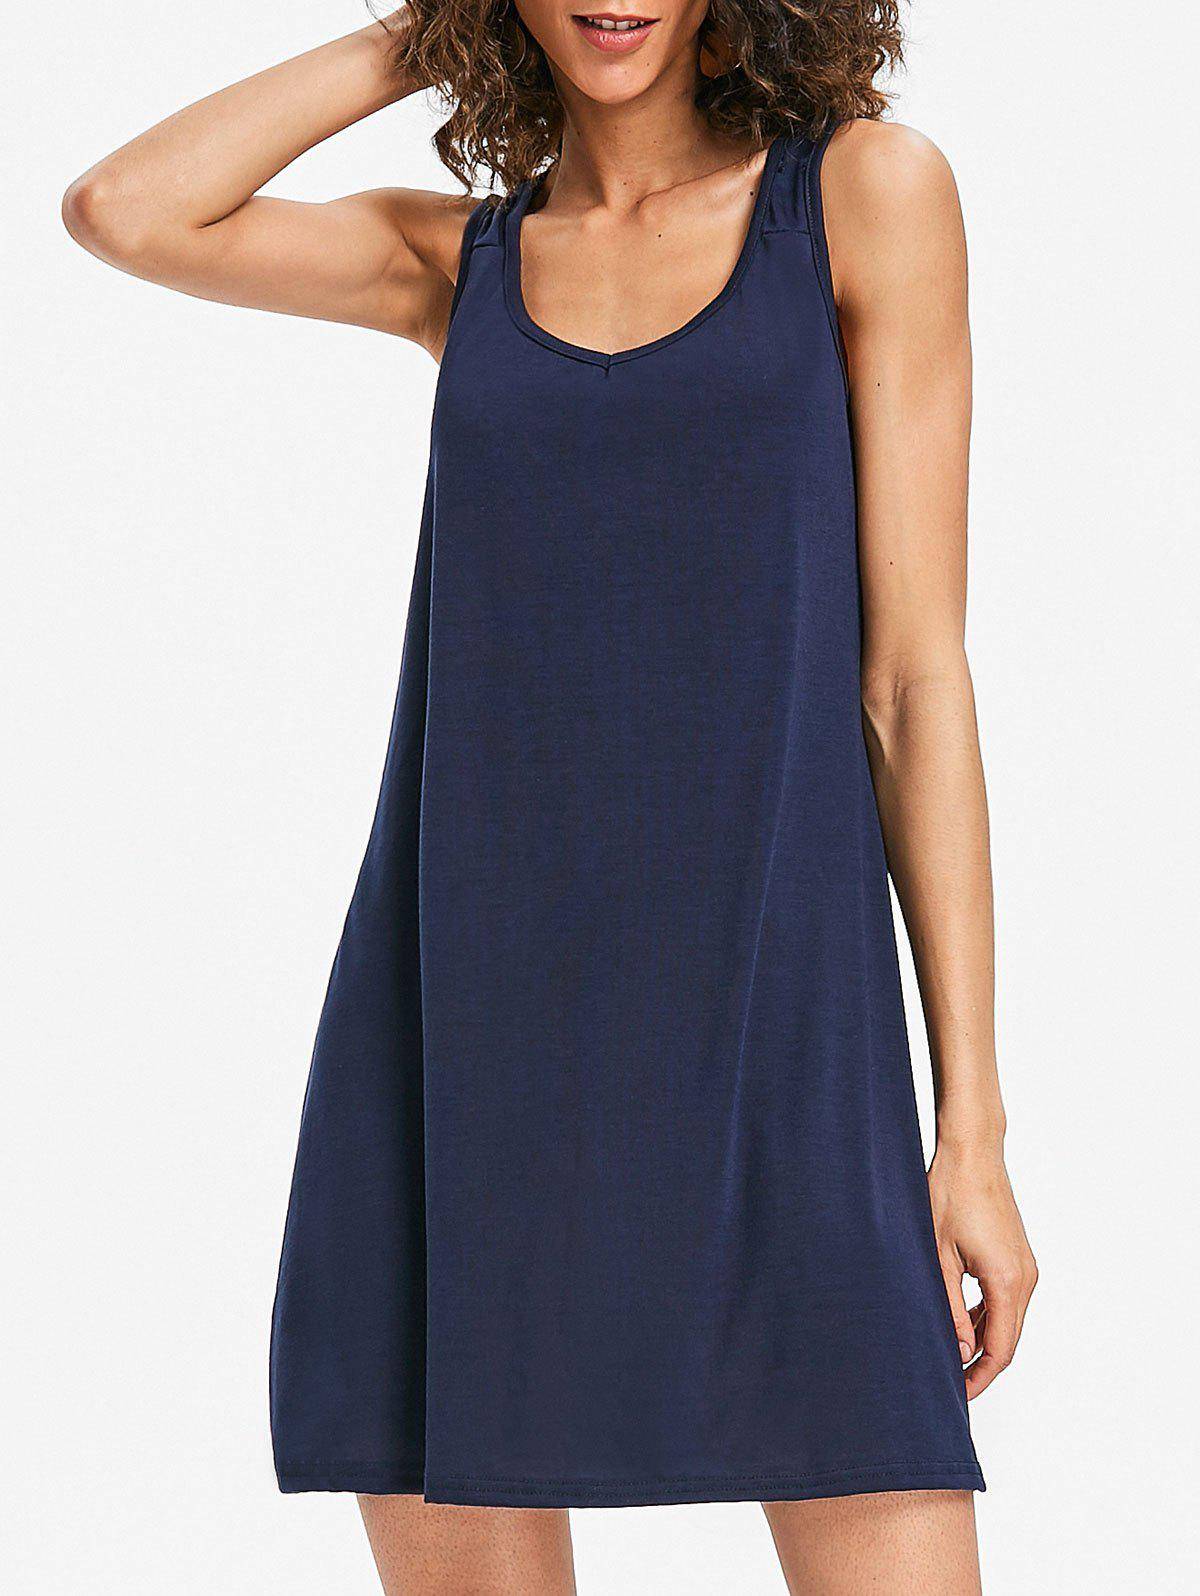 Mini Sleeveless Shift Dress - MIDNIGHT BLUE XL